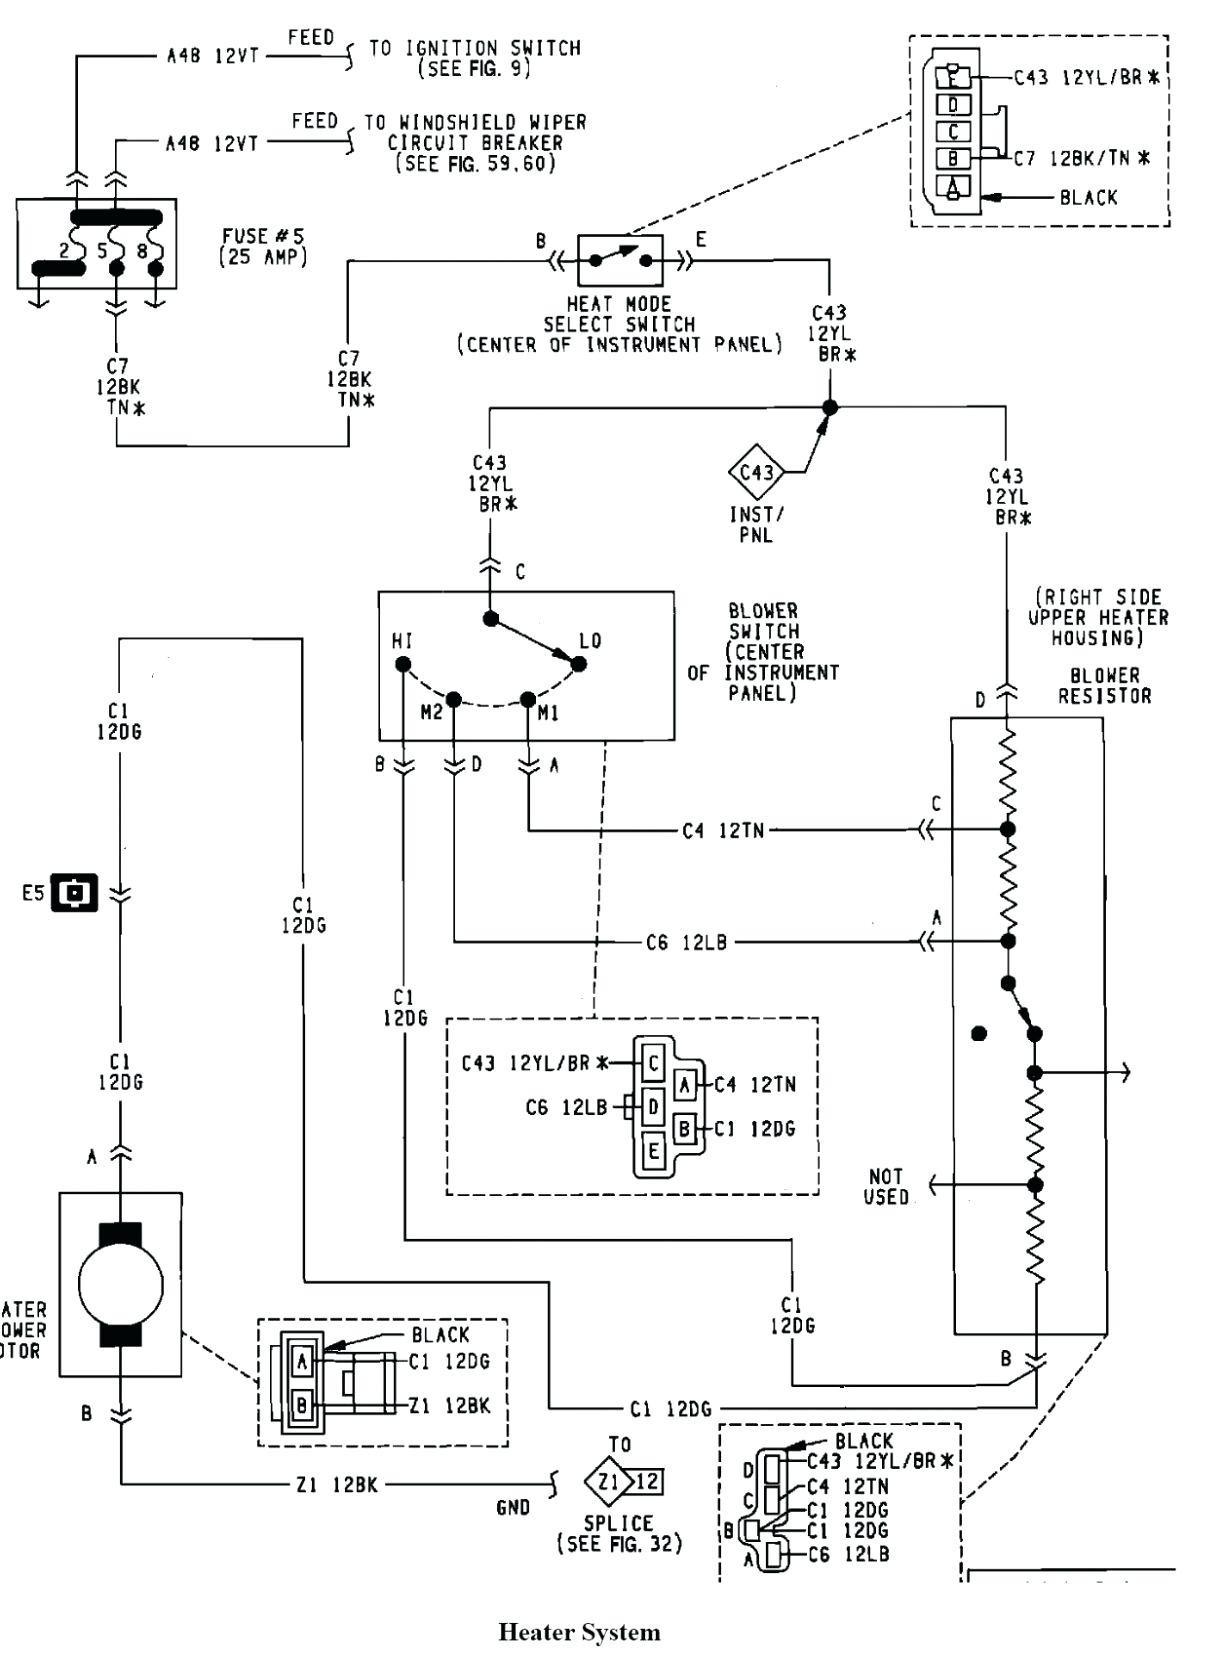 1999 jeep wrangler blower wiring harness - wiring diagram pace-united8 -  pace-united8.maceratadoc.it  maceratadoc.it